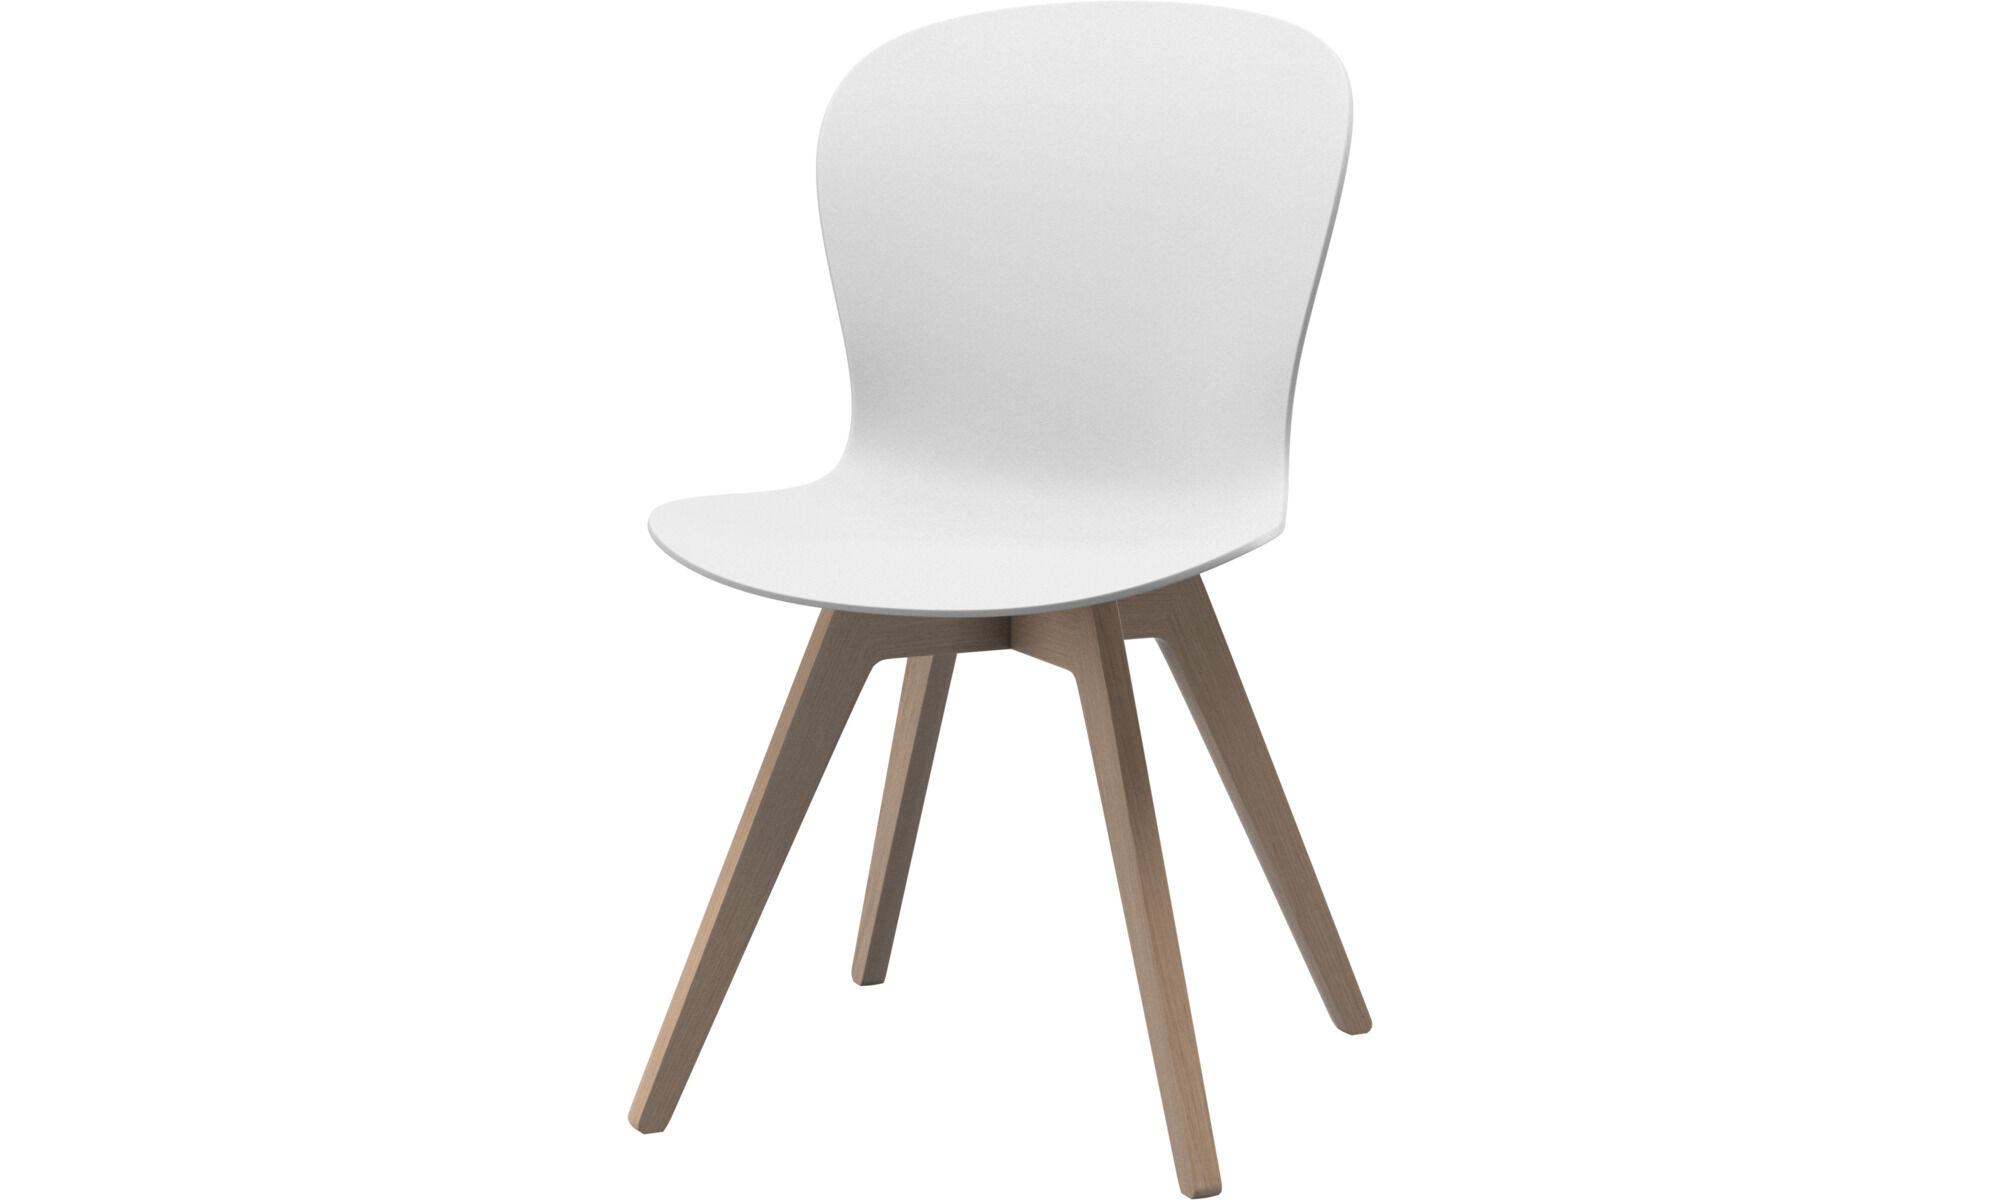 chair covers for sale adelaide high floor mat nz modern dining chairs quality design from boconcept white oak